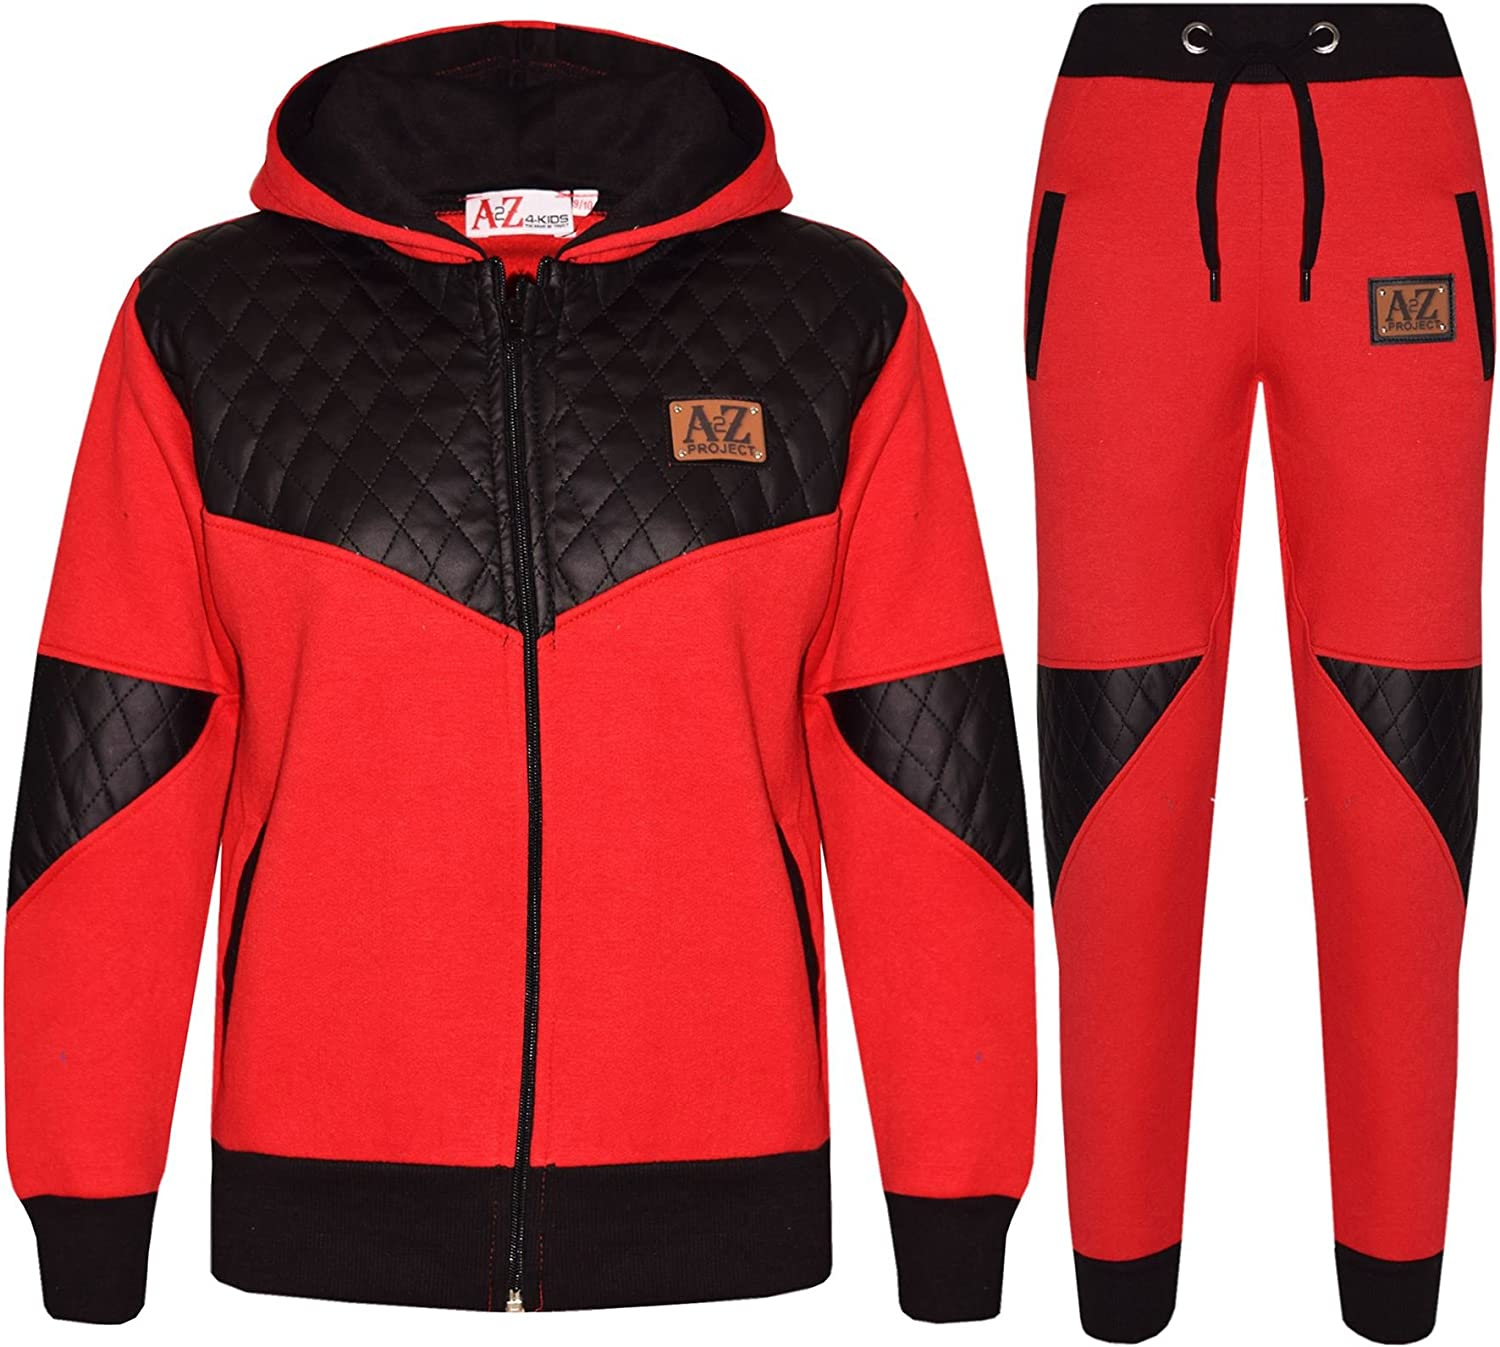 A2Z 4 Kids/® Girls Tracksuit Designers A2Z Project Badged Black /& Pink Hoodie /& Botom Jogging Suit Joggers Age 5 6 7 8 9 10 11 12 13 Years